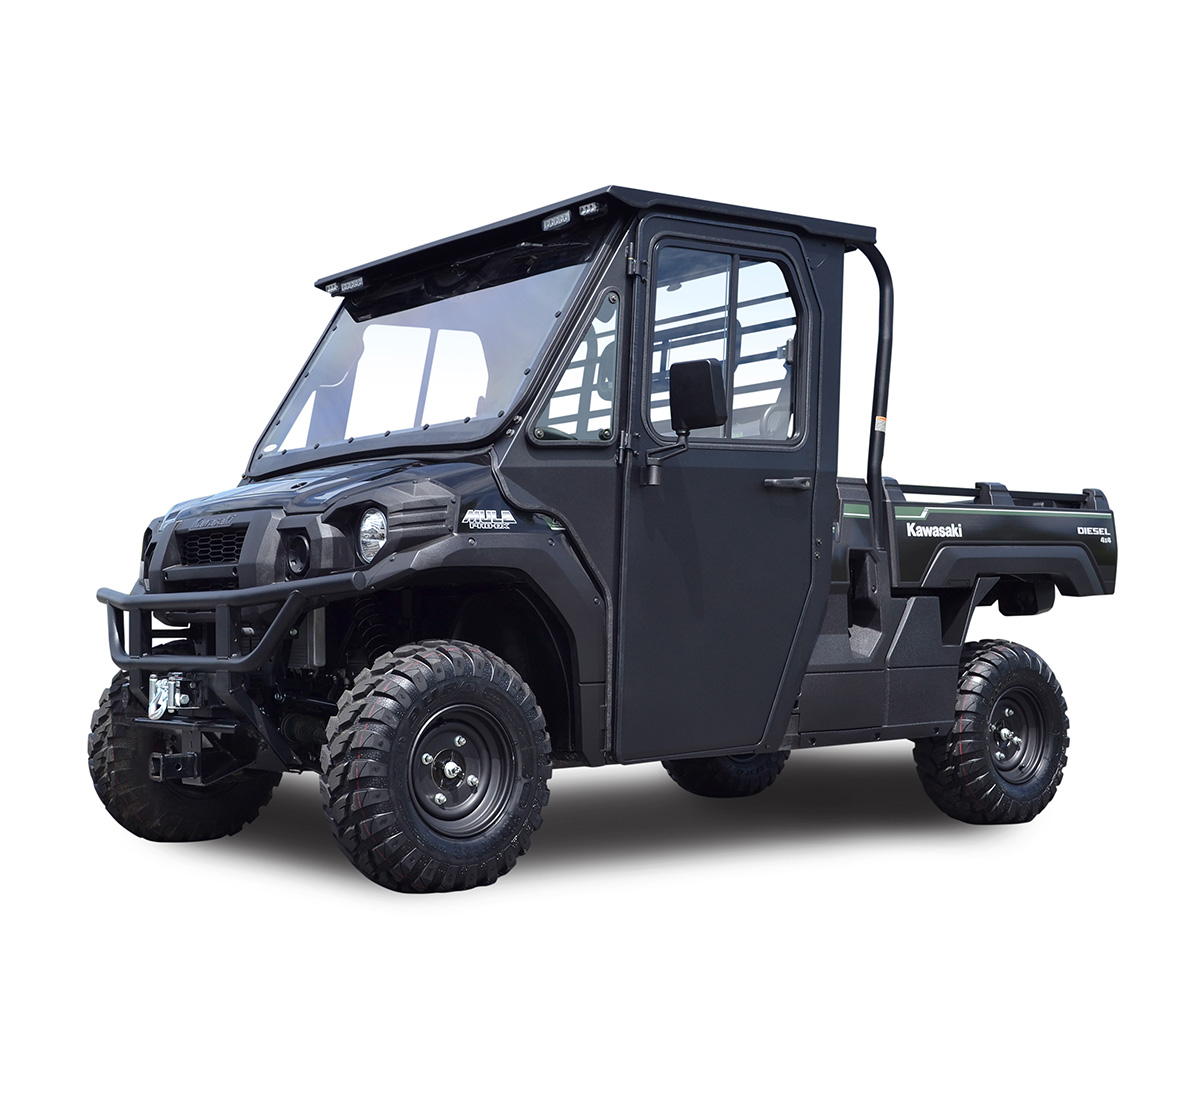 Side X Side Hard Cab Enclosure with Polycarbonate Windshield